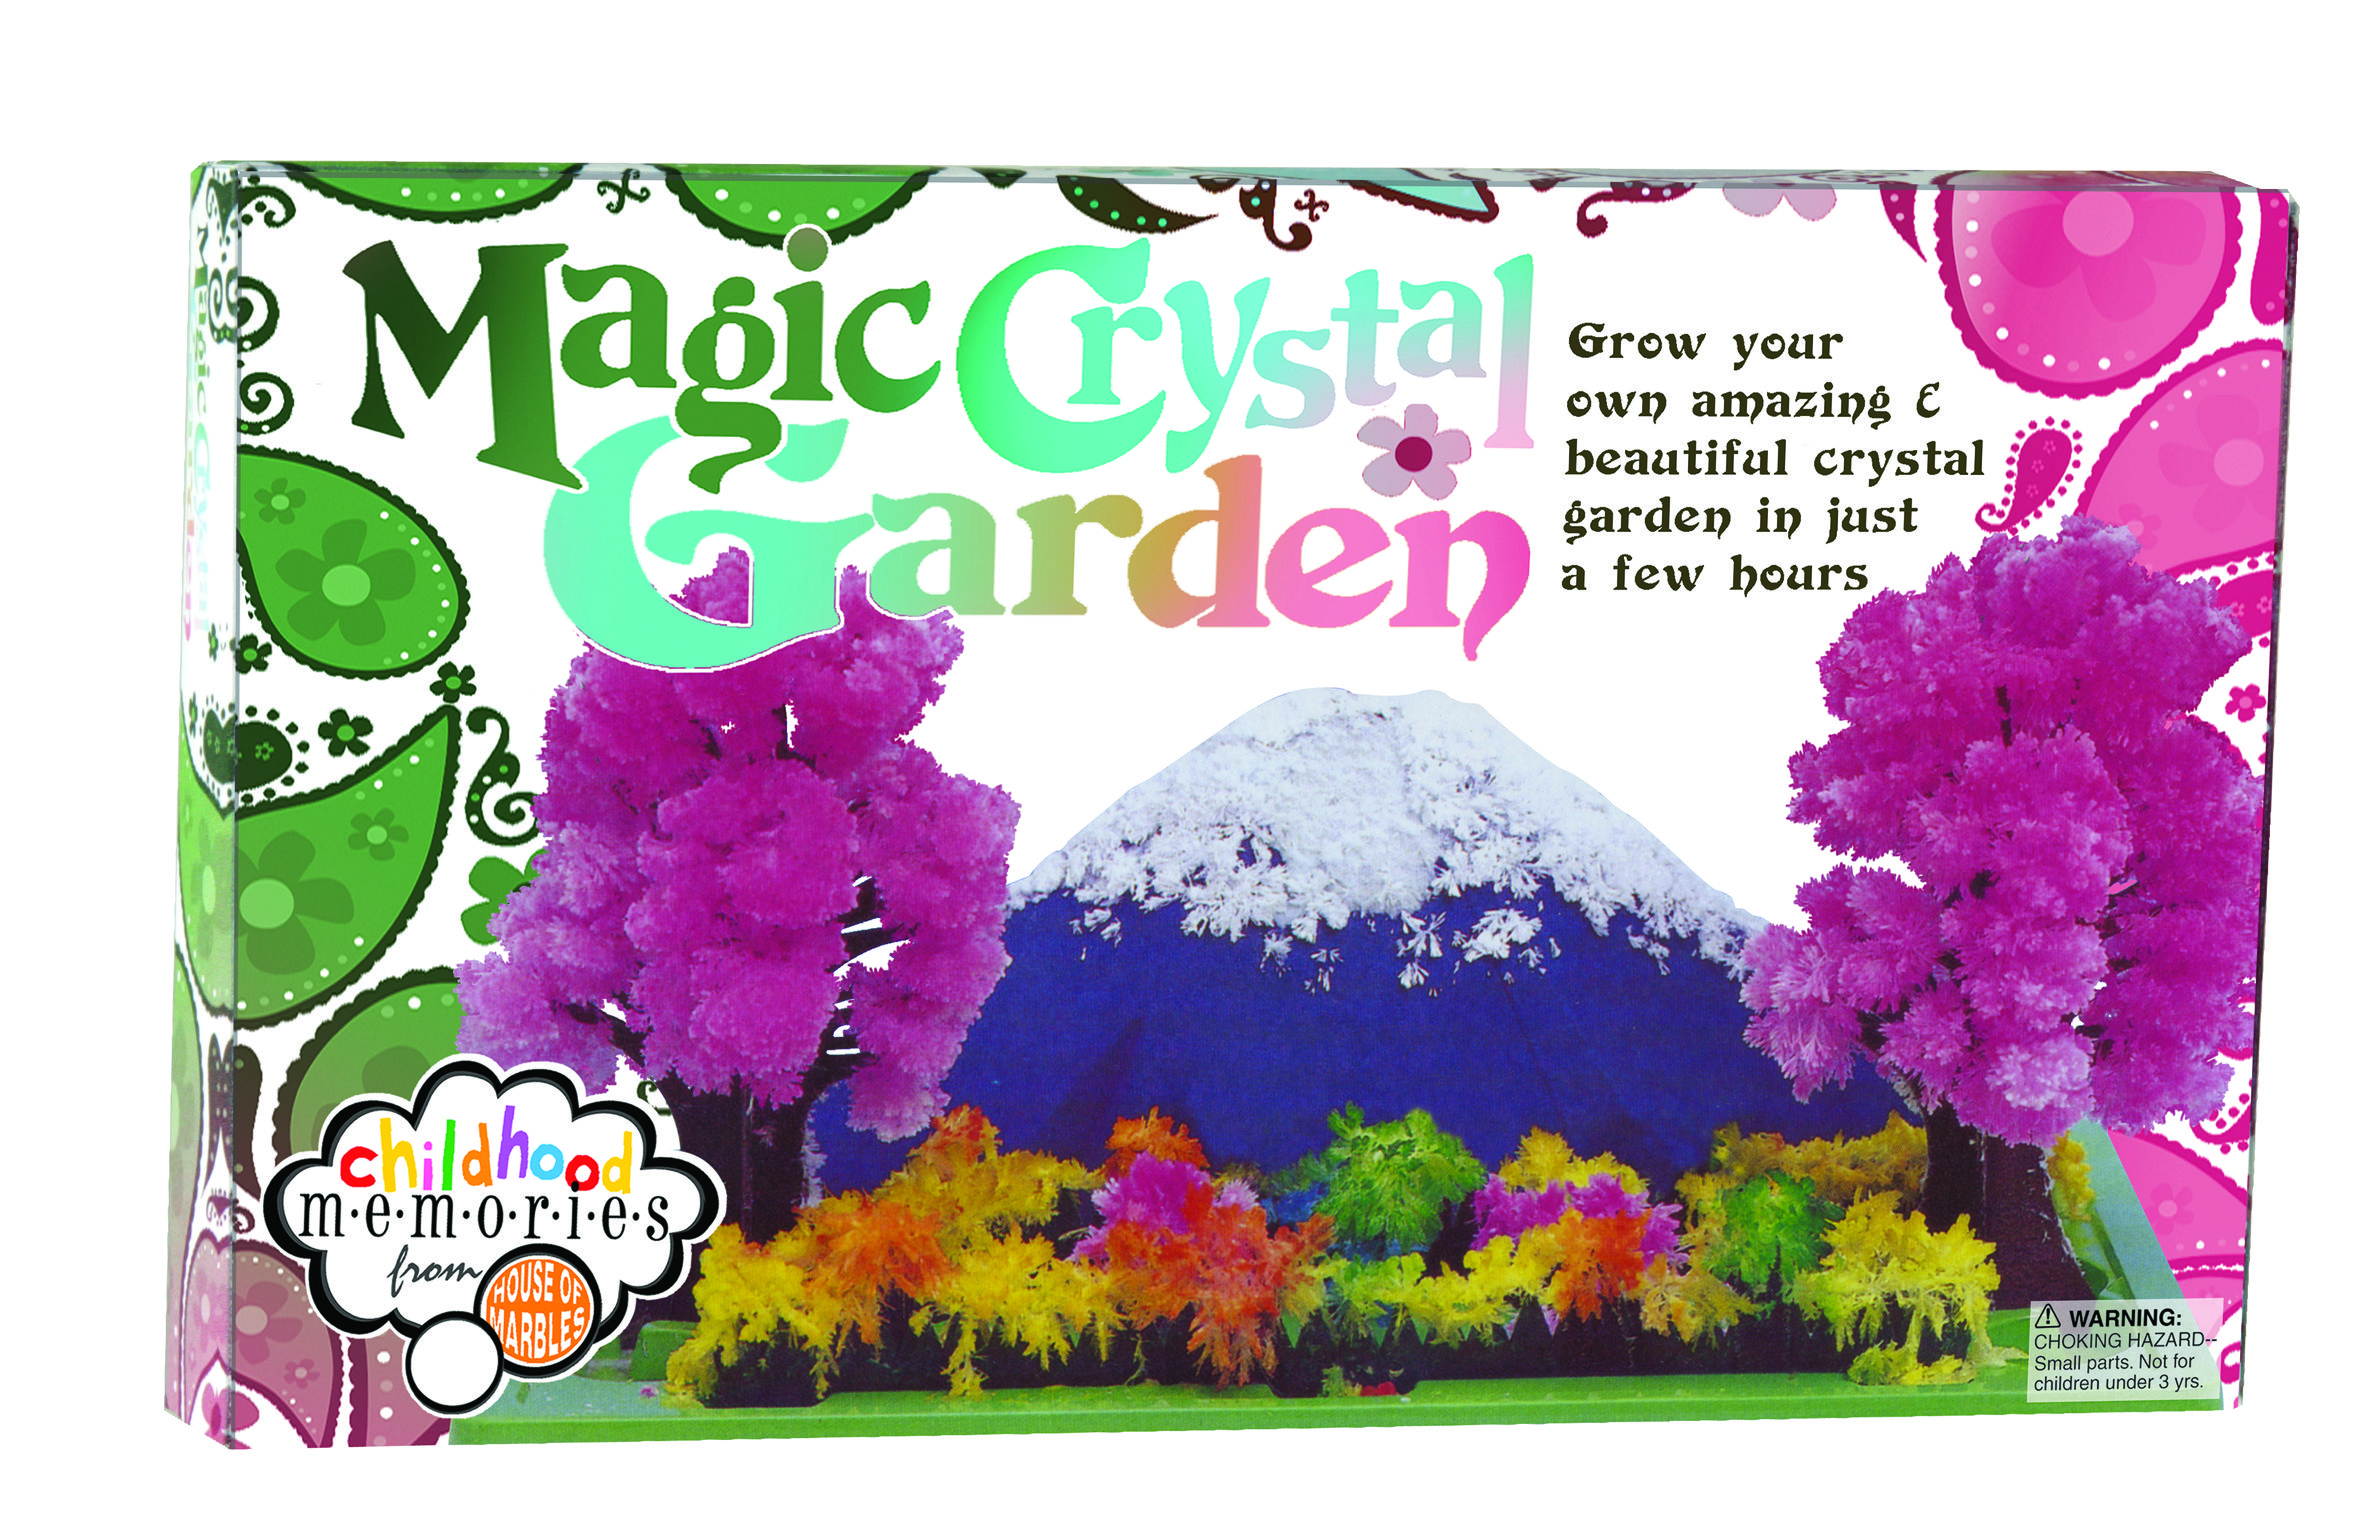 Magic Crystal Garden Kit. A Great Gift Idea For Christmas